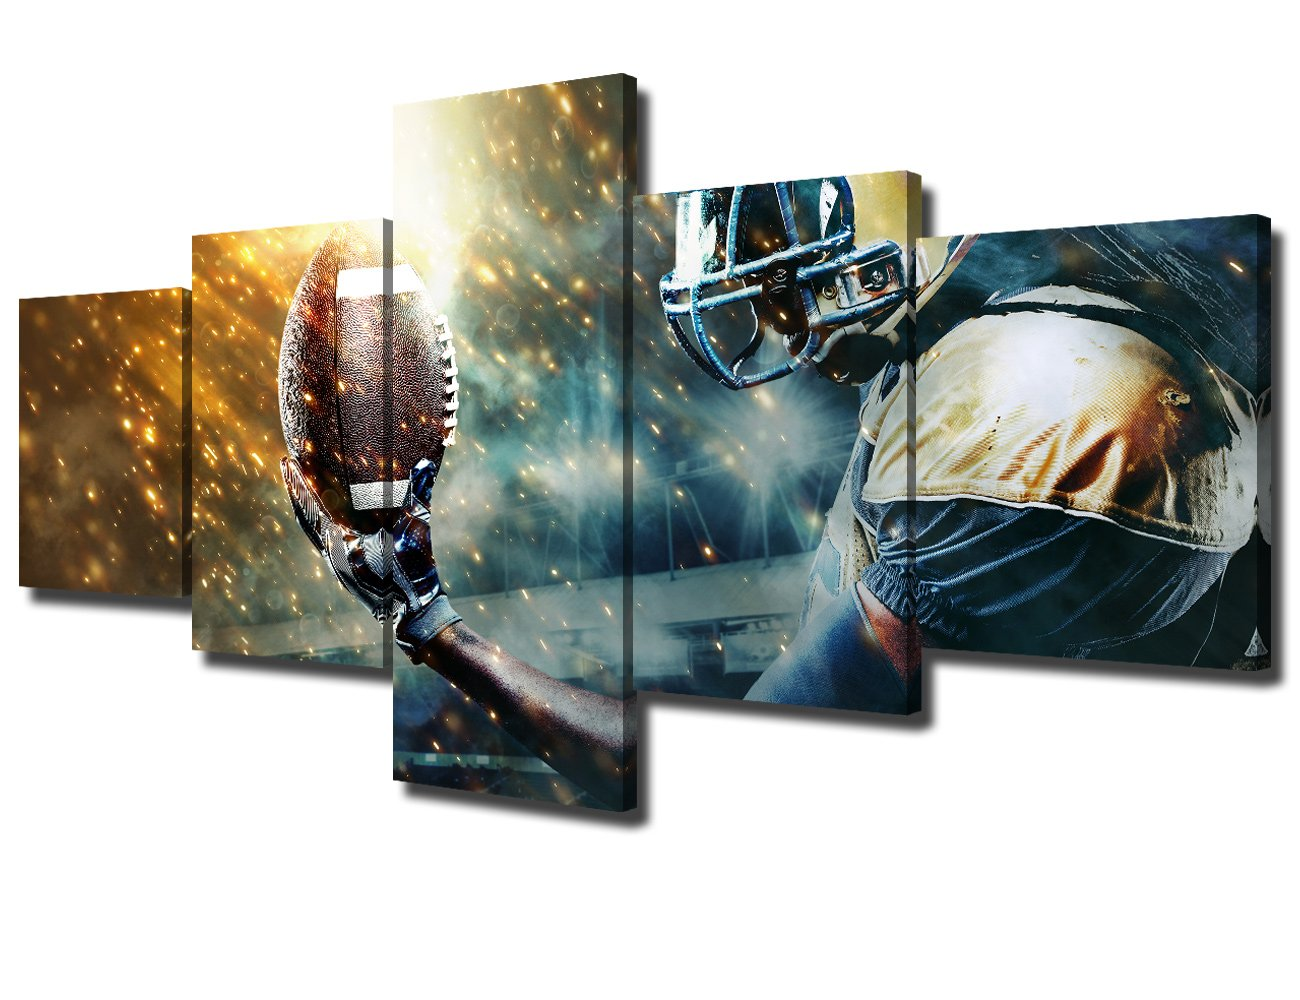 Teal Wall Art 5 Piece Canvas Pictures for Living Room Contemporary Decor American Football Sportsman Artwork Painting Modern Home Decoration Framed Gallery-wrapped Stretched Ready to Hang(50''Wx24''H)